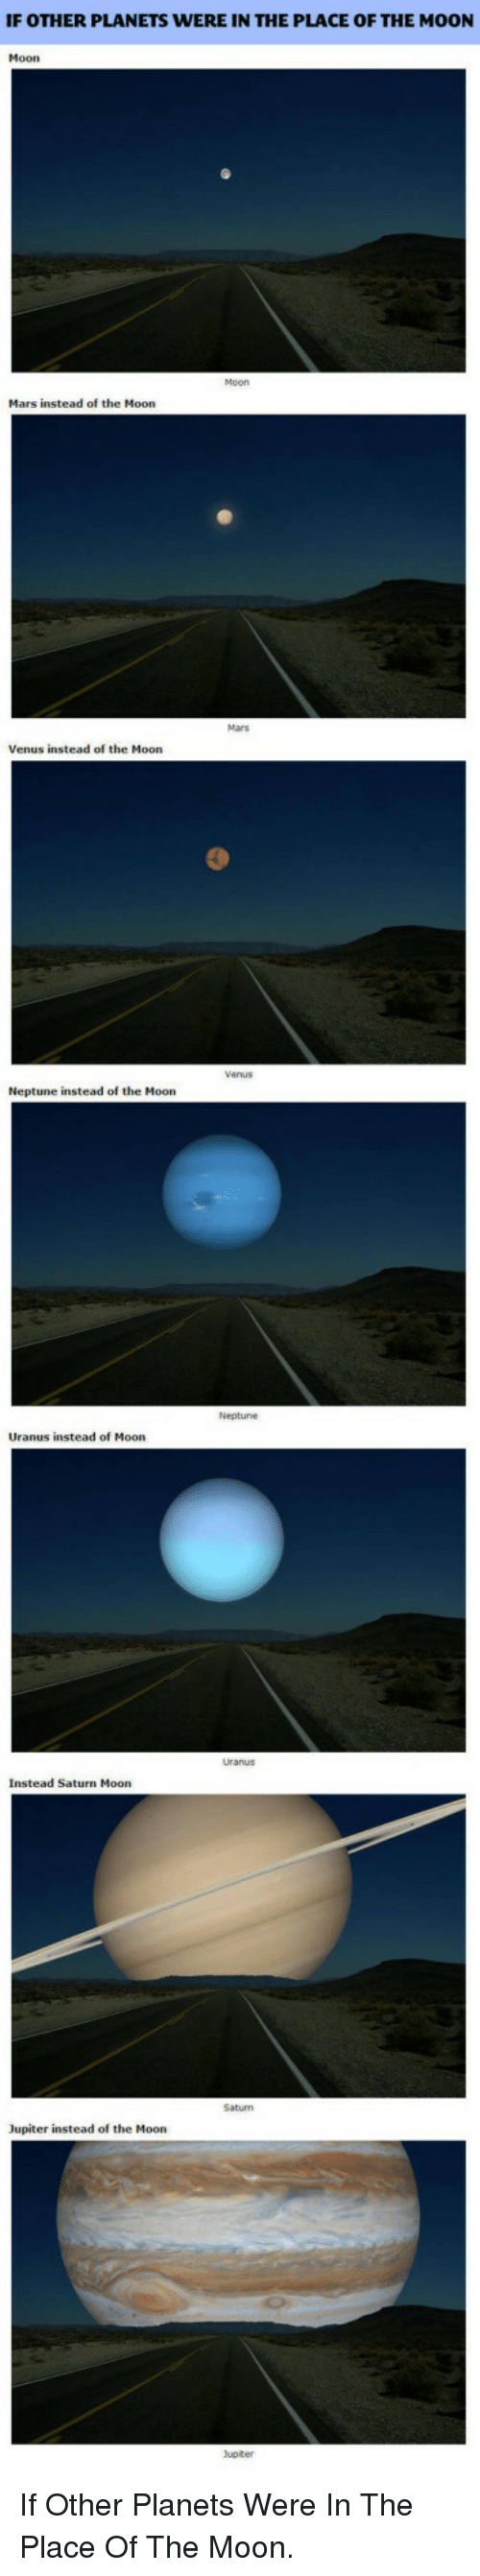 moon moon: IF OTHER PLANETS VERE IN THE  PLACE OF  THE MOON  Moon  Mars instead of the Moon  Mars  Venus instead of the Moon  Neptune instead of the Moon  Neptune  Uranus instead of Moon  Instead Saturn Moon  Saturn  Jupiter instead of the Moon  Jupiter <p>If Other Planets Were In The Place Of The Moon.</p>